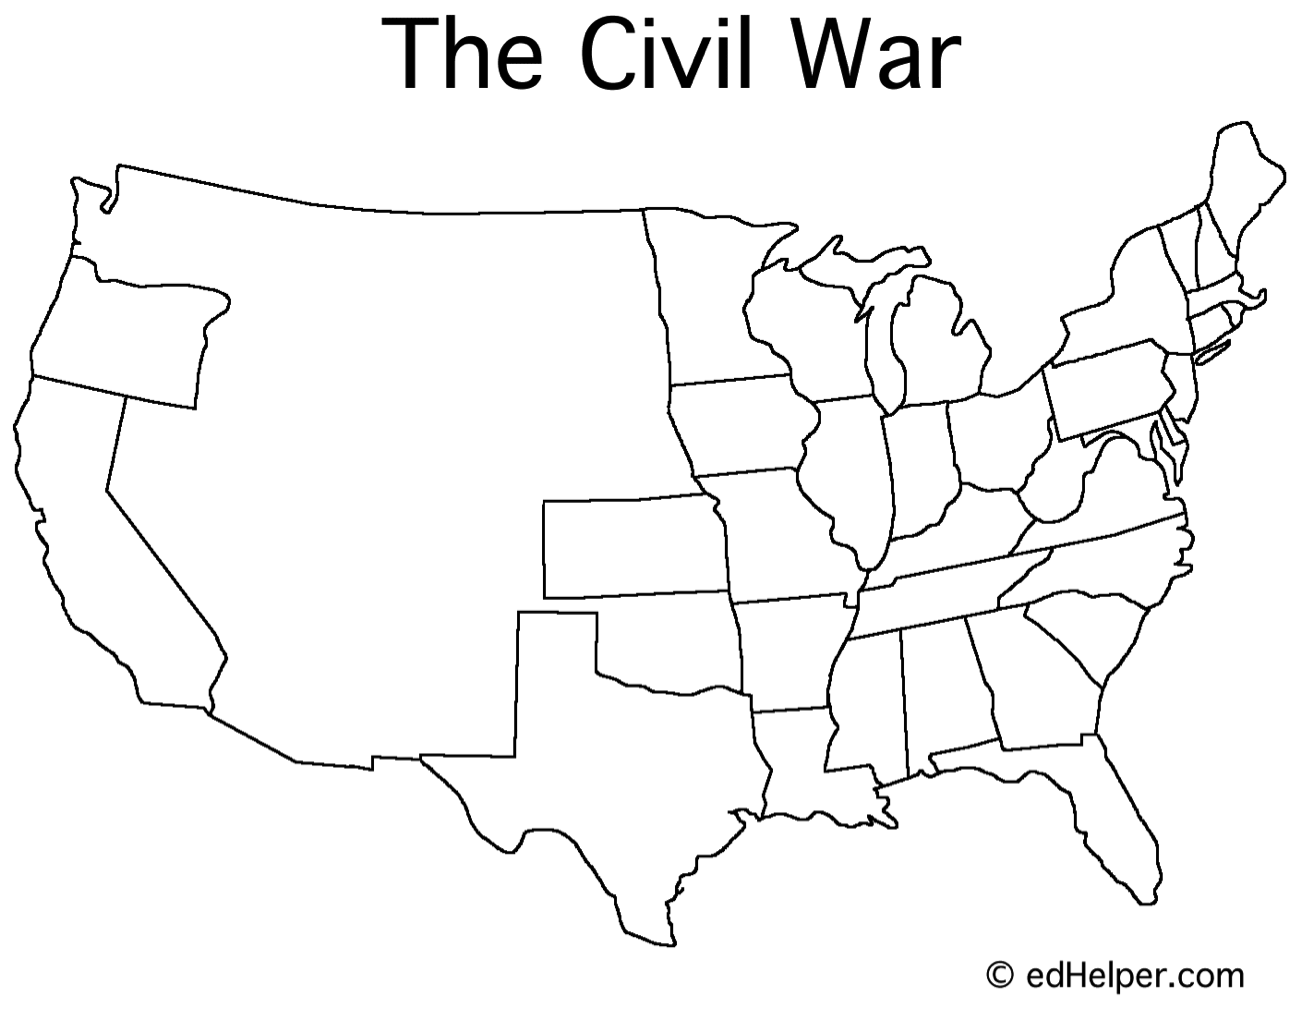 Civil War Timeline